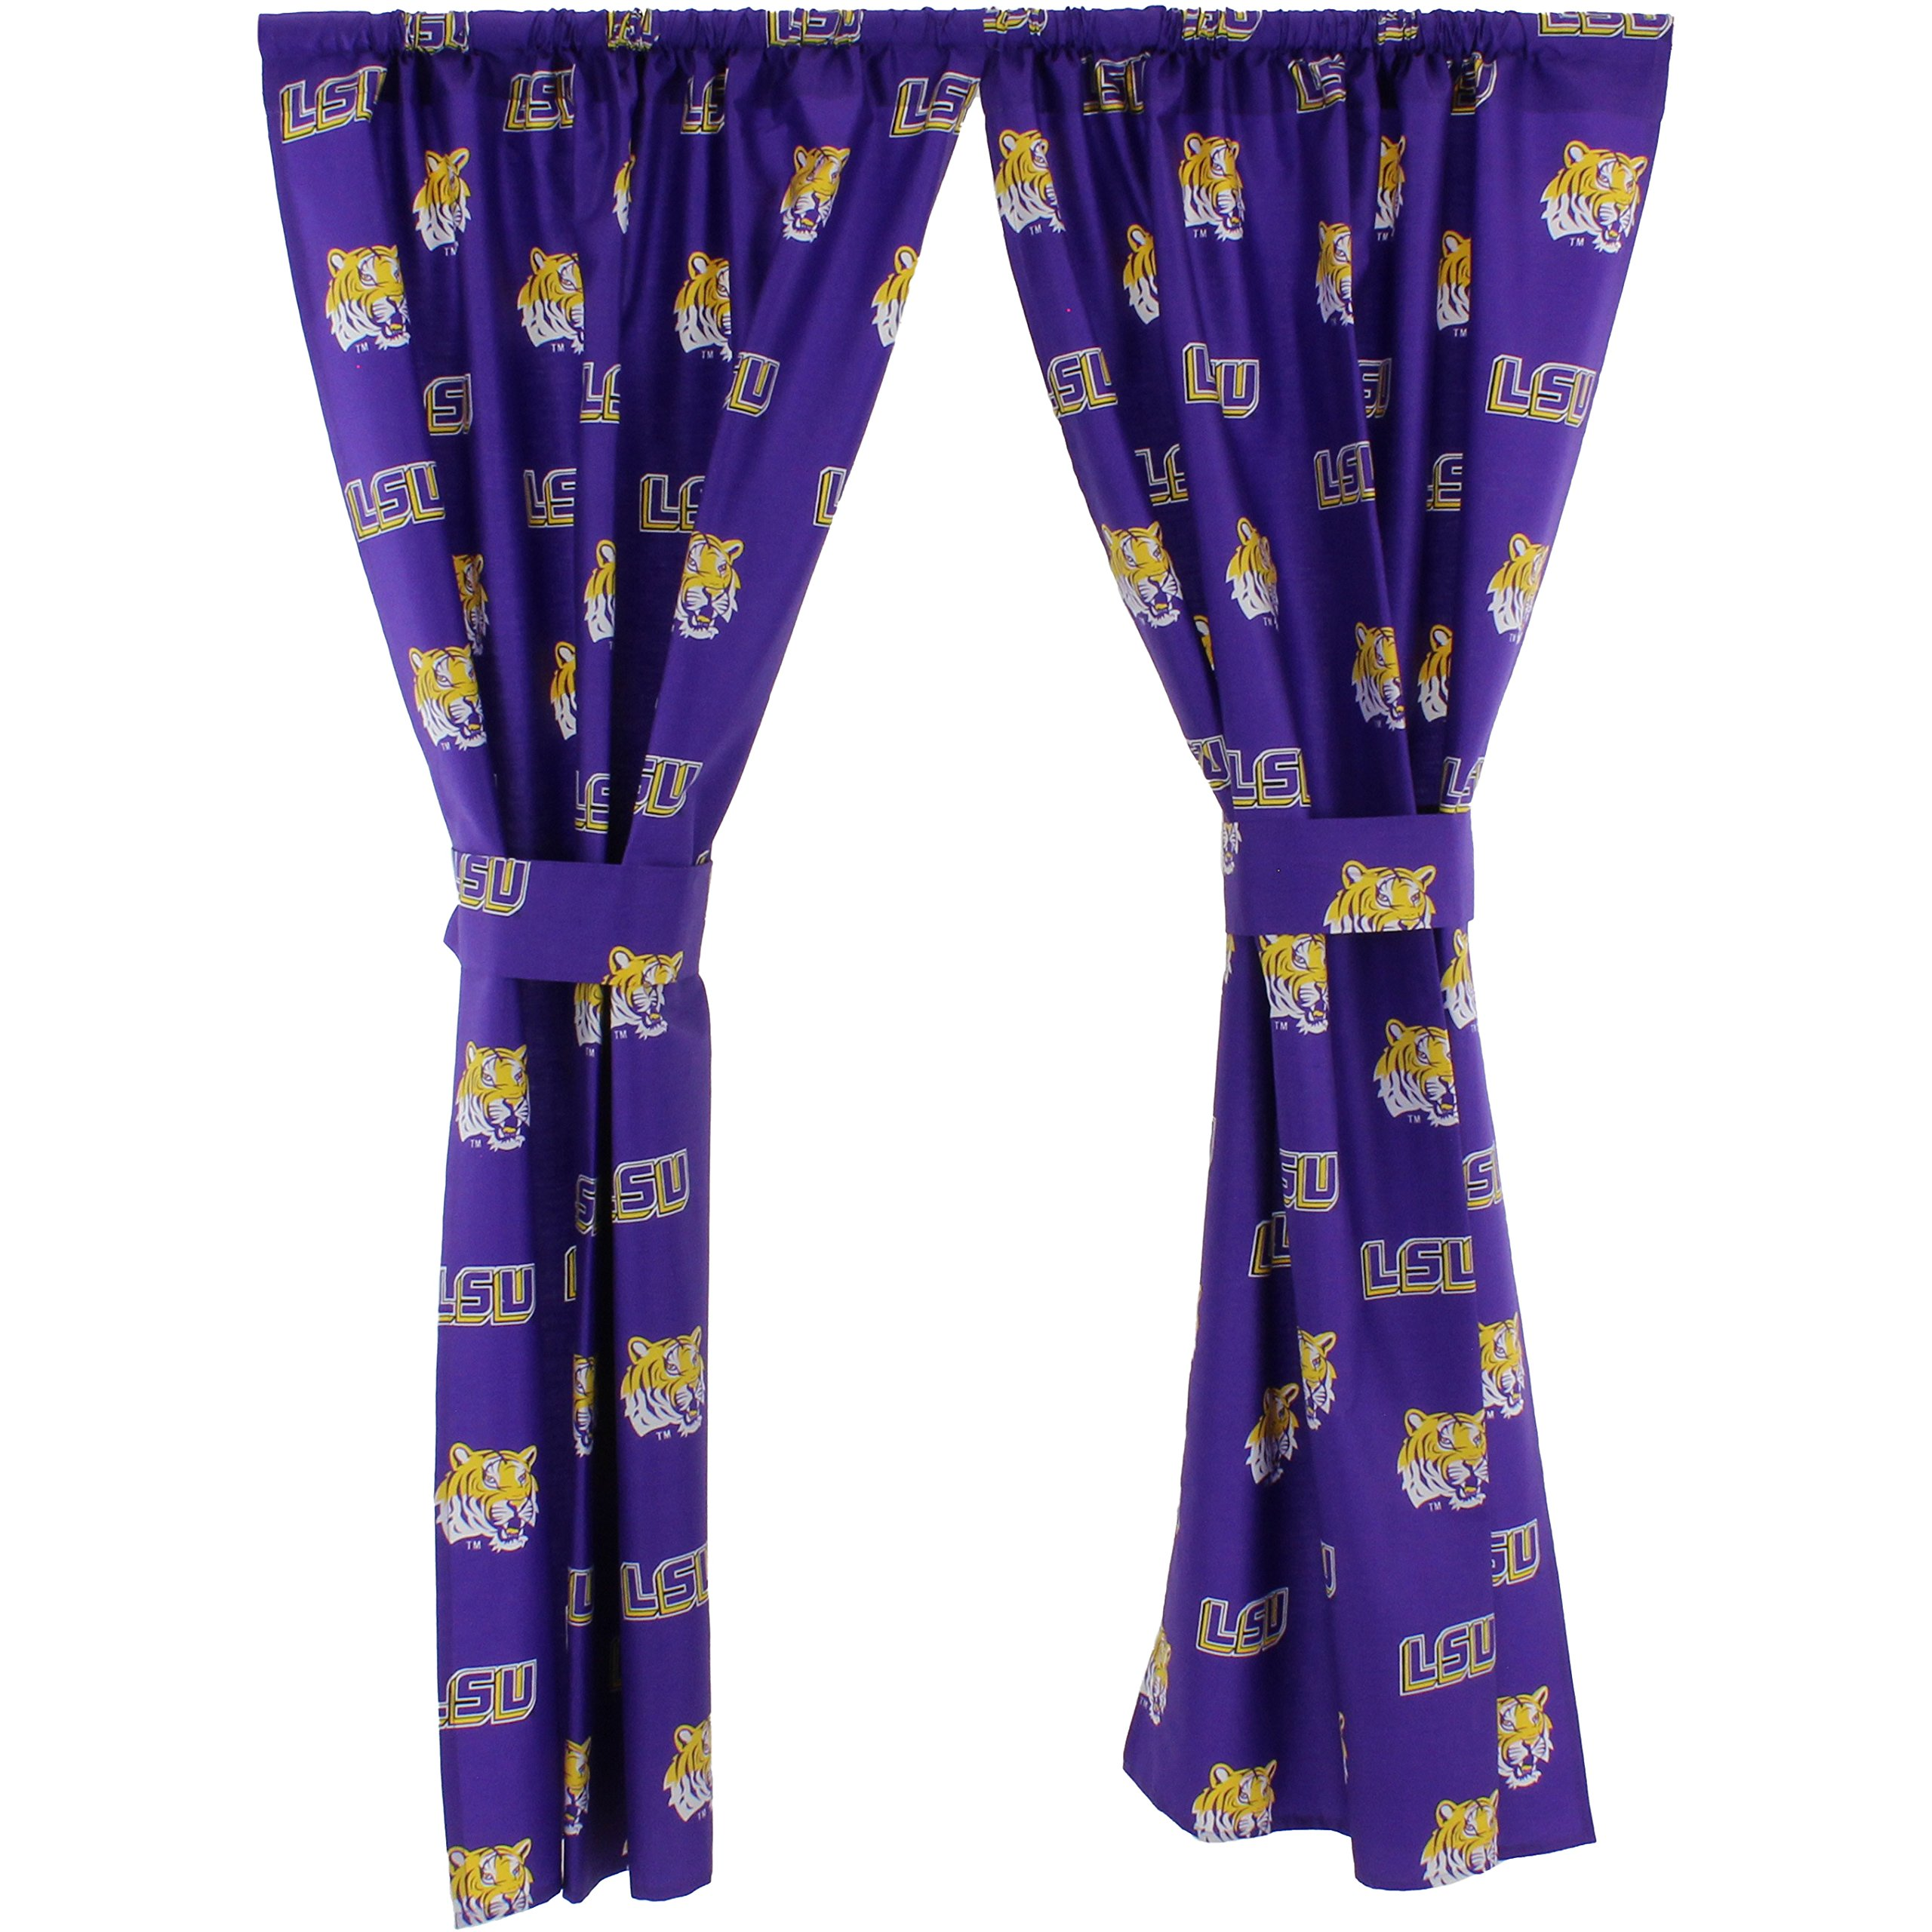 College Covers Louisiana State Tigers Printed Curtain Panels 42'' x 84'' by College Covers (Image #1)